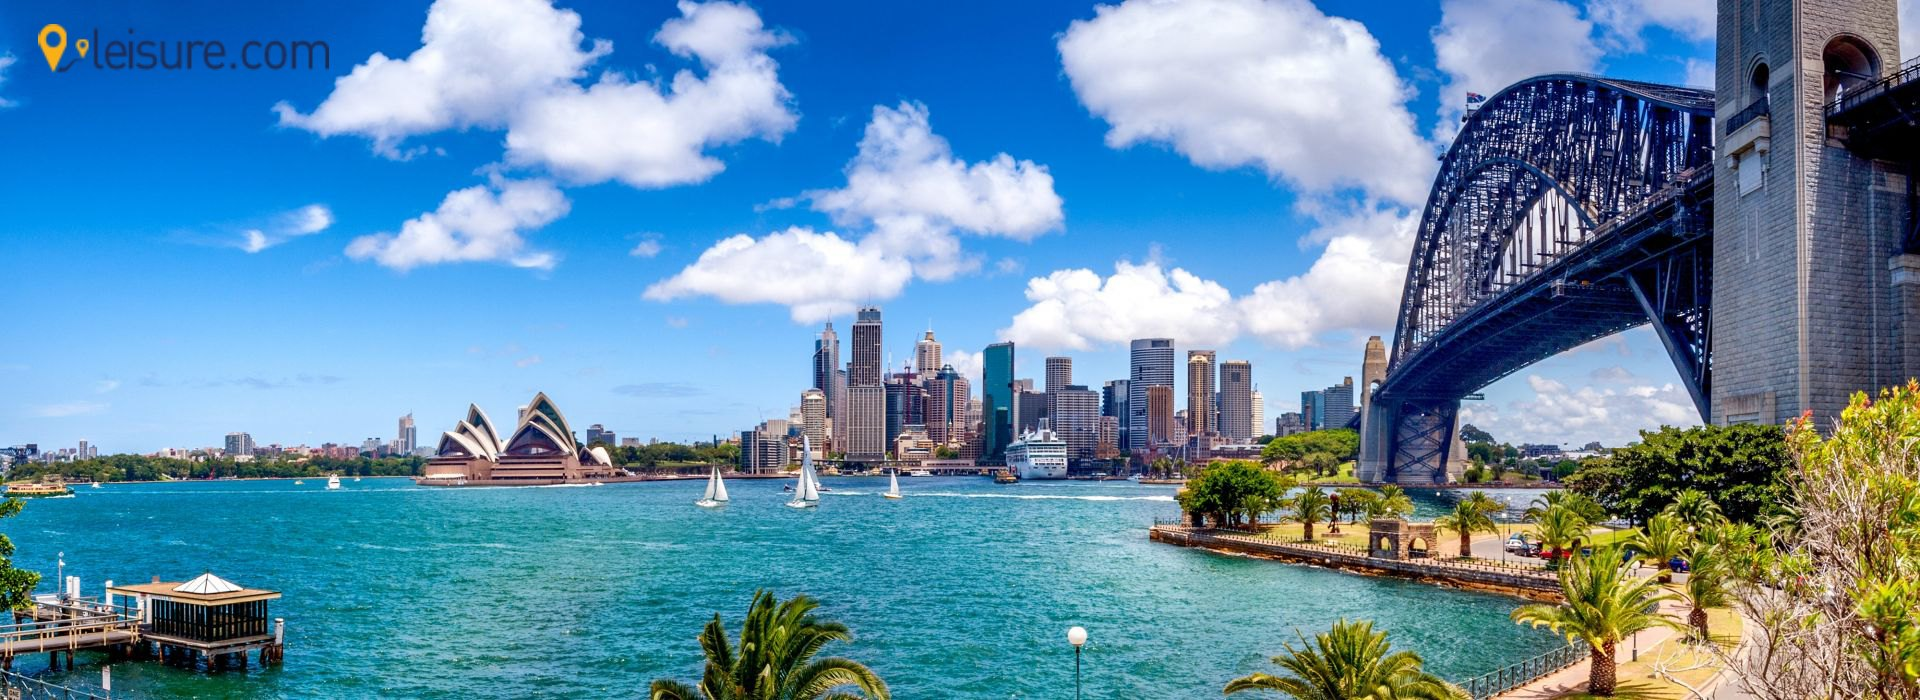 Australia trip package: Experience the diversity of incredible Australia